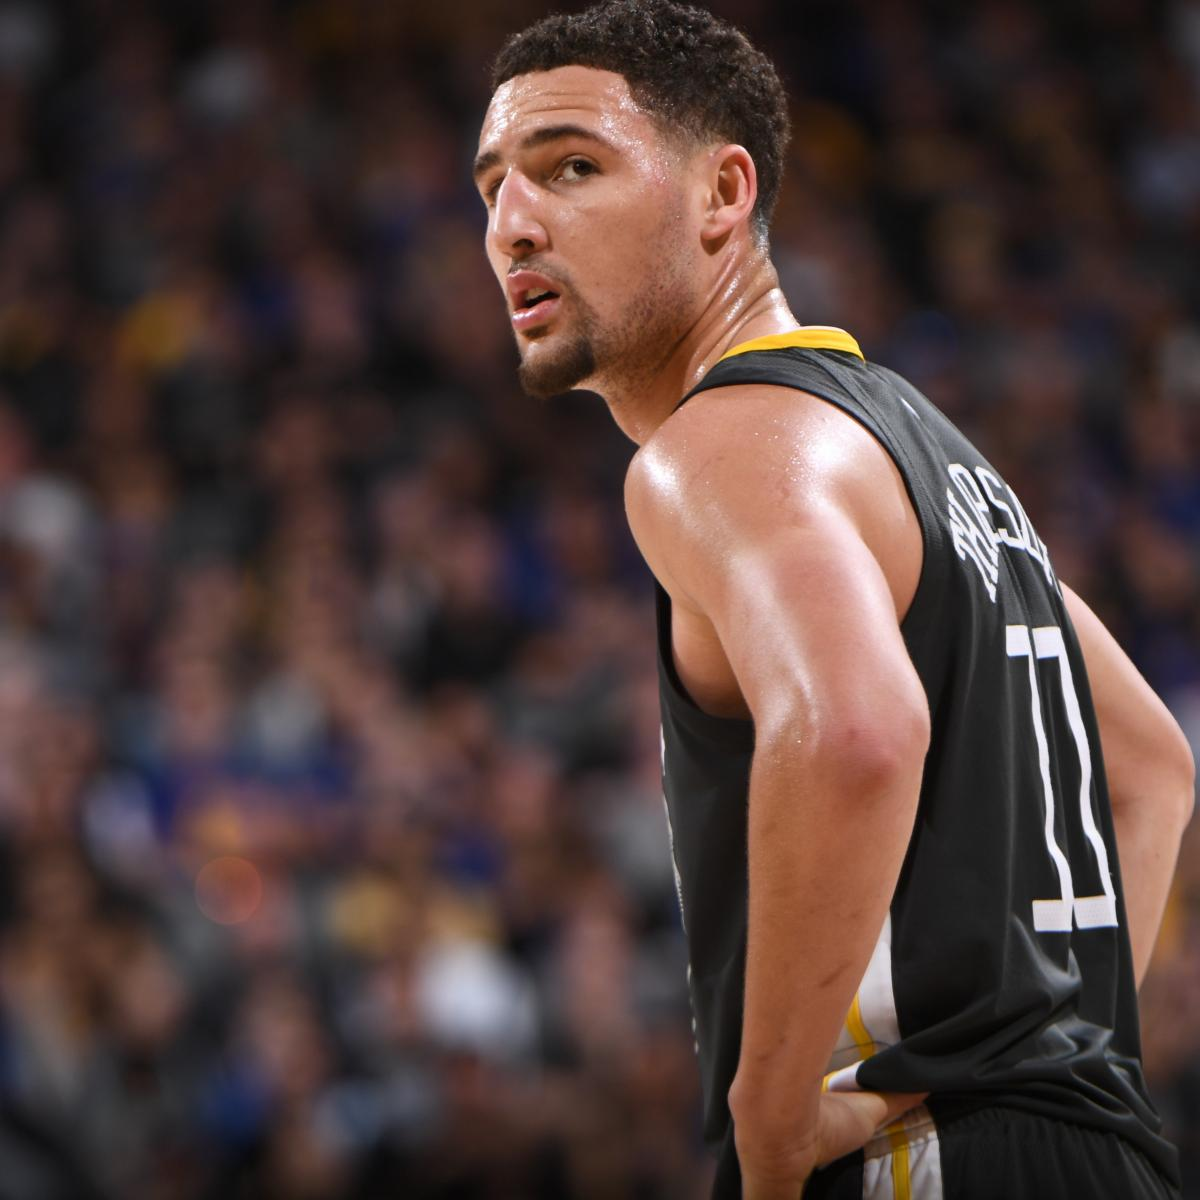 Warriors Come Out To Play Bleacher Report: Klay Thompson Says Goal Is To Play For Warriors His Entire